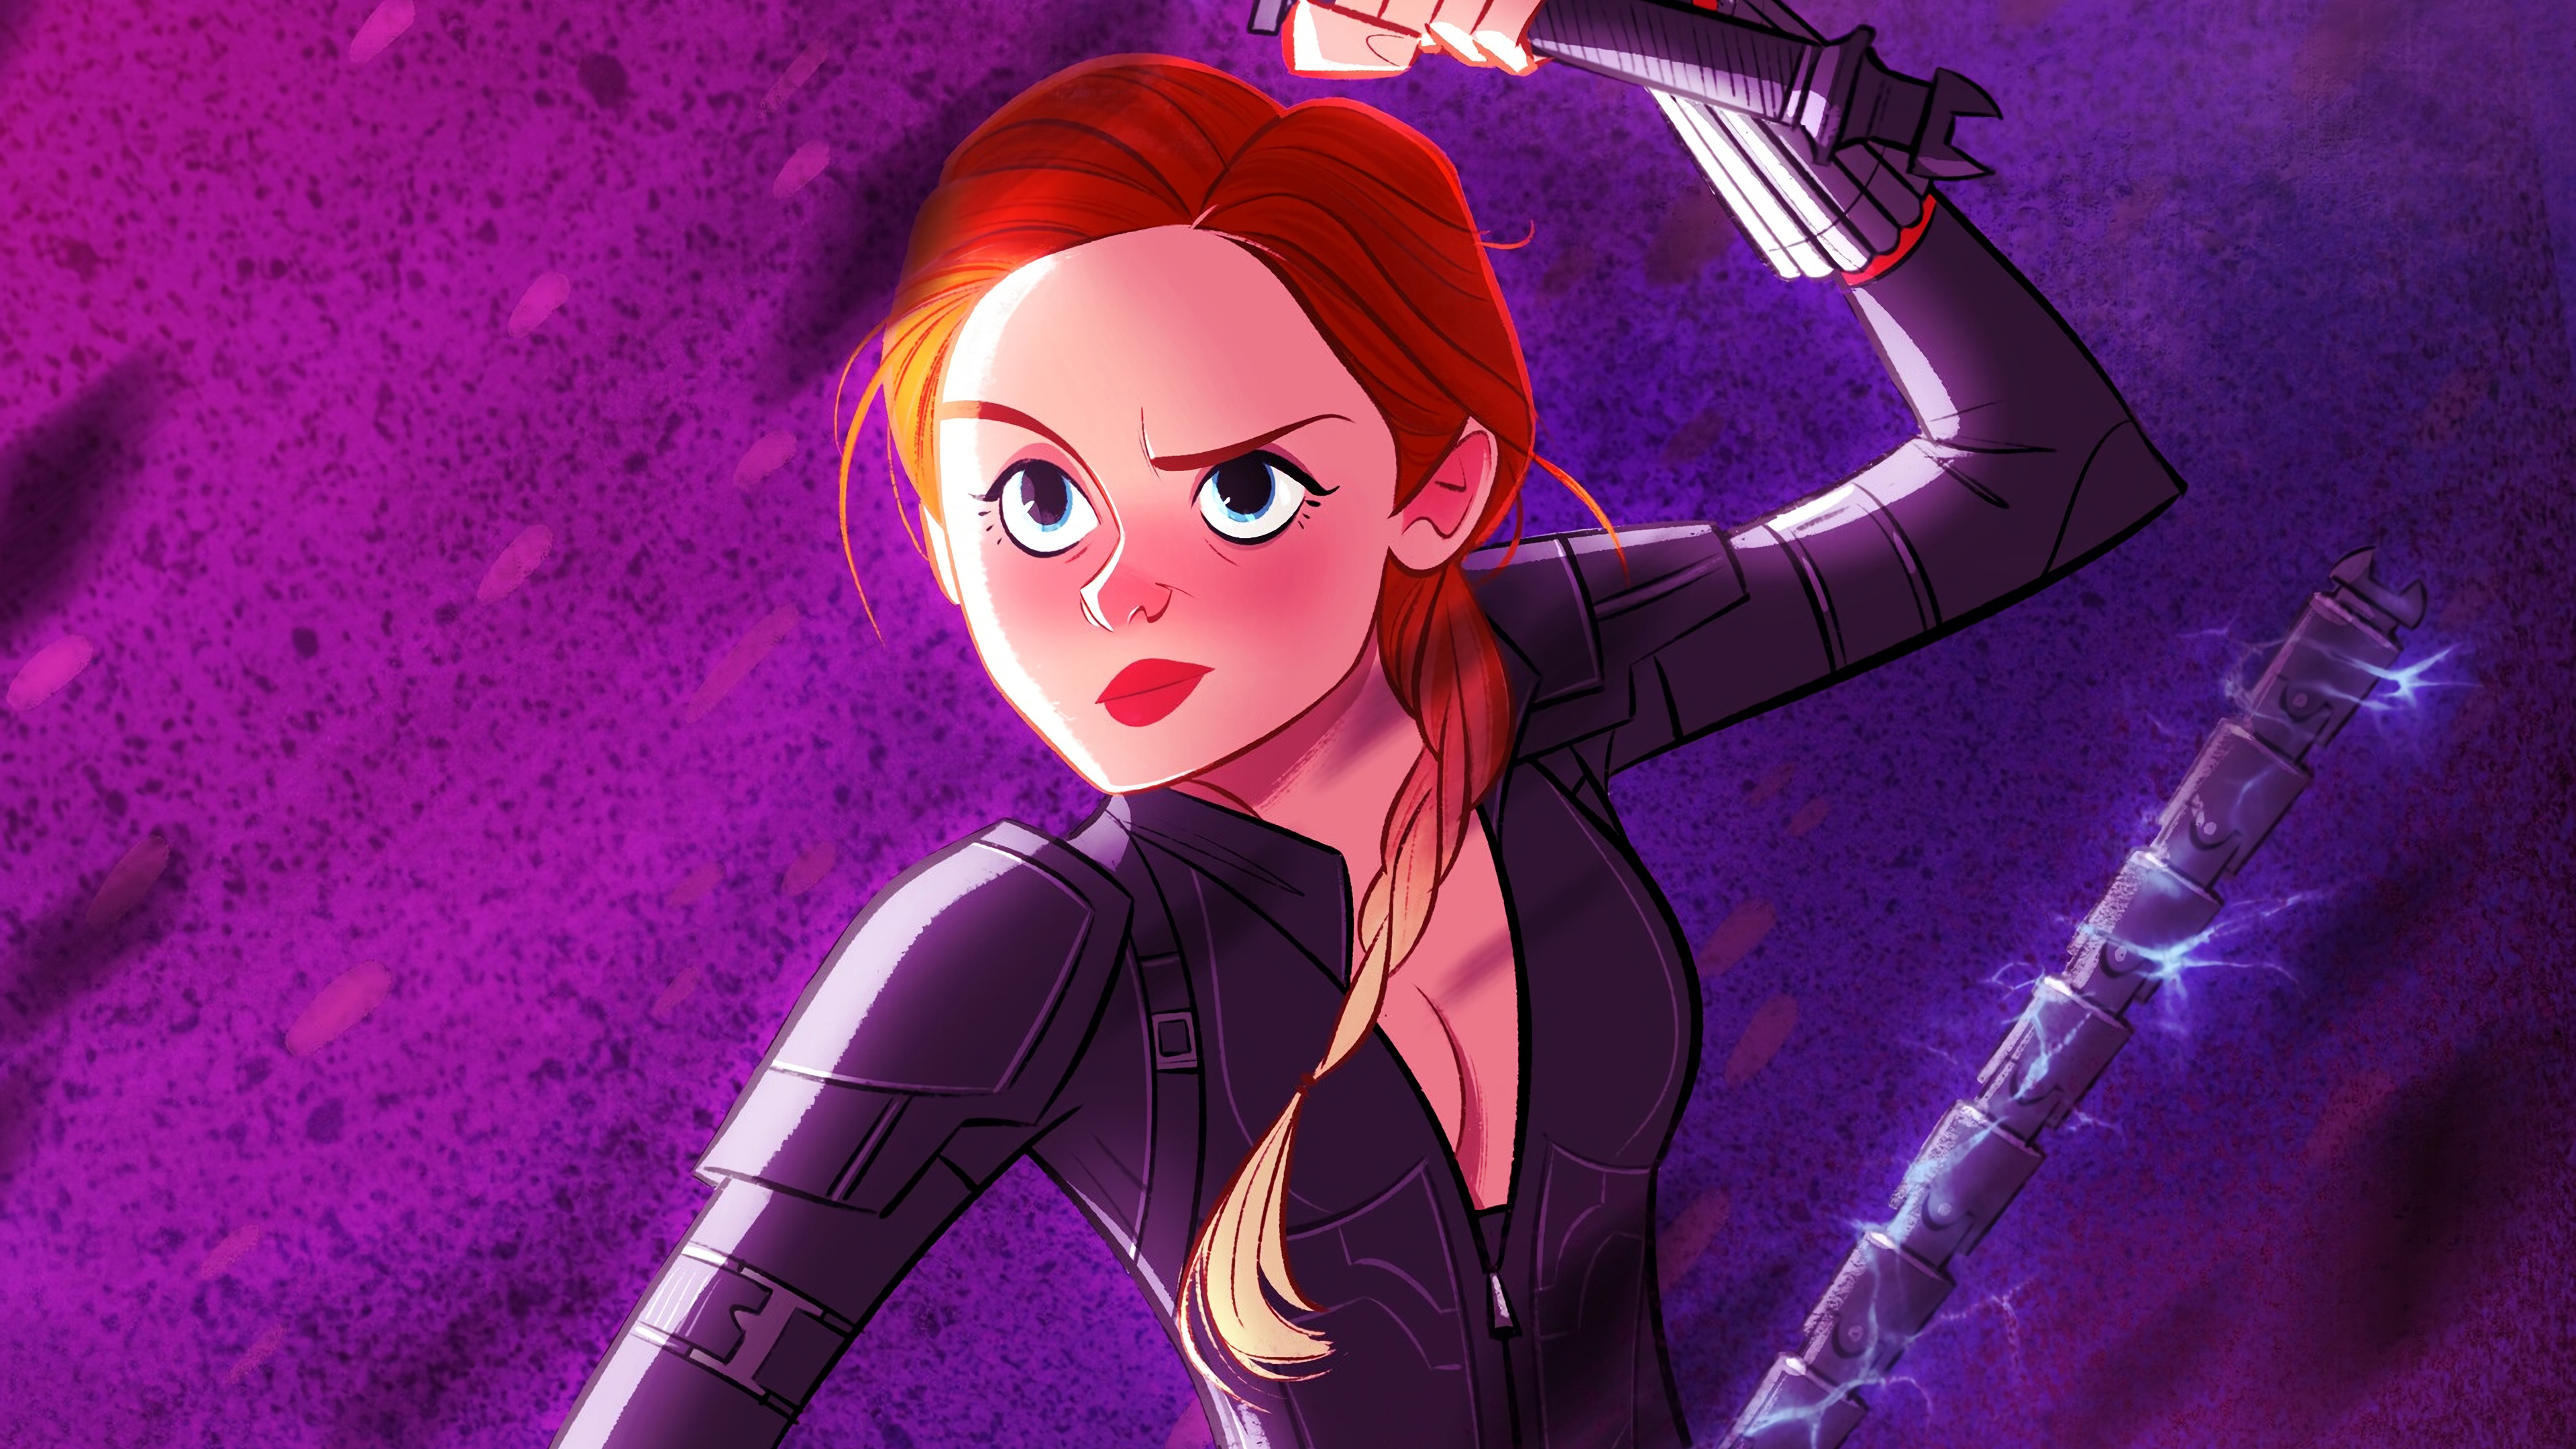 Black Widow Avengers Endgame Cartoon Art 4k Hd Superheroes 4k Wallpapers Images Backgrounds Photos And Pictures